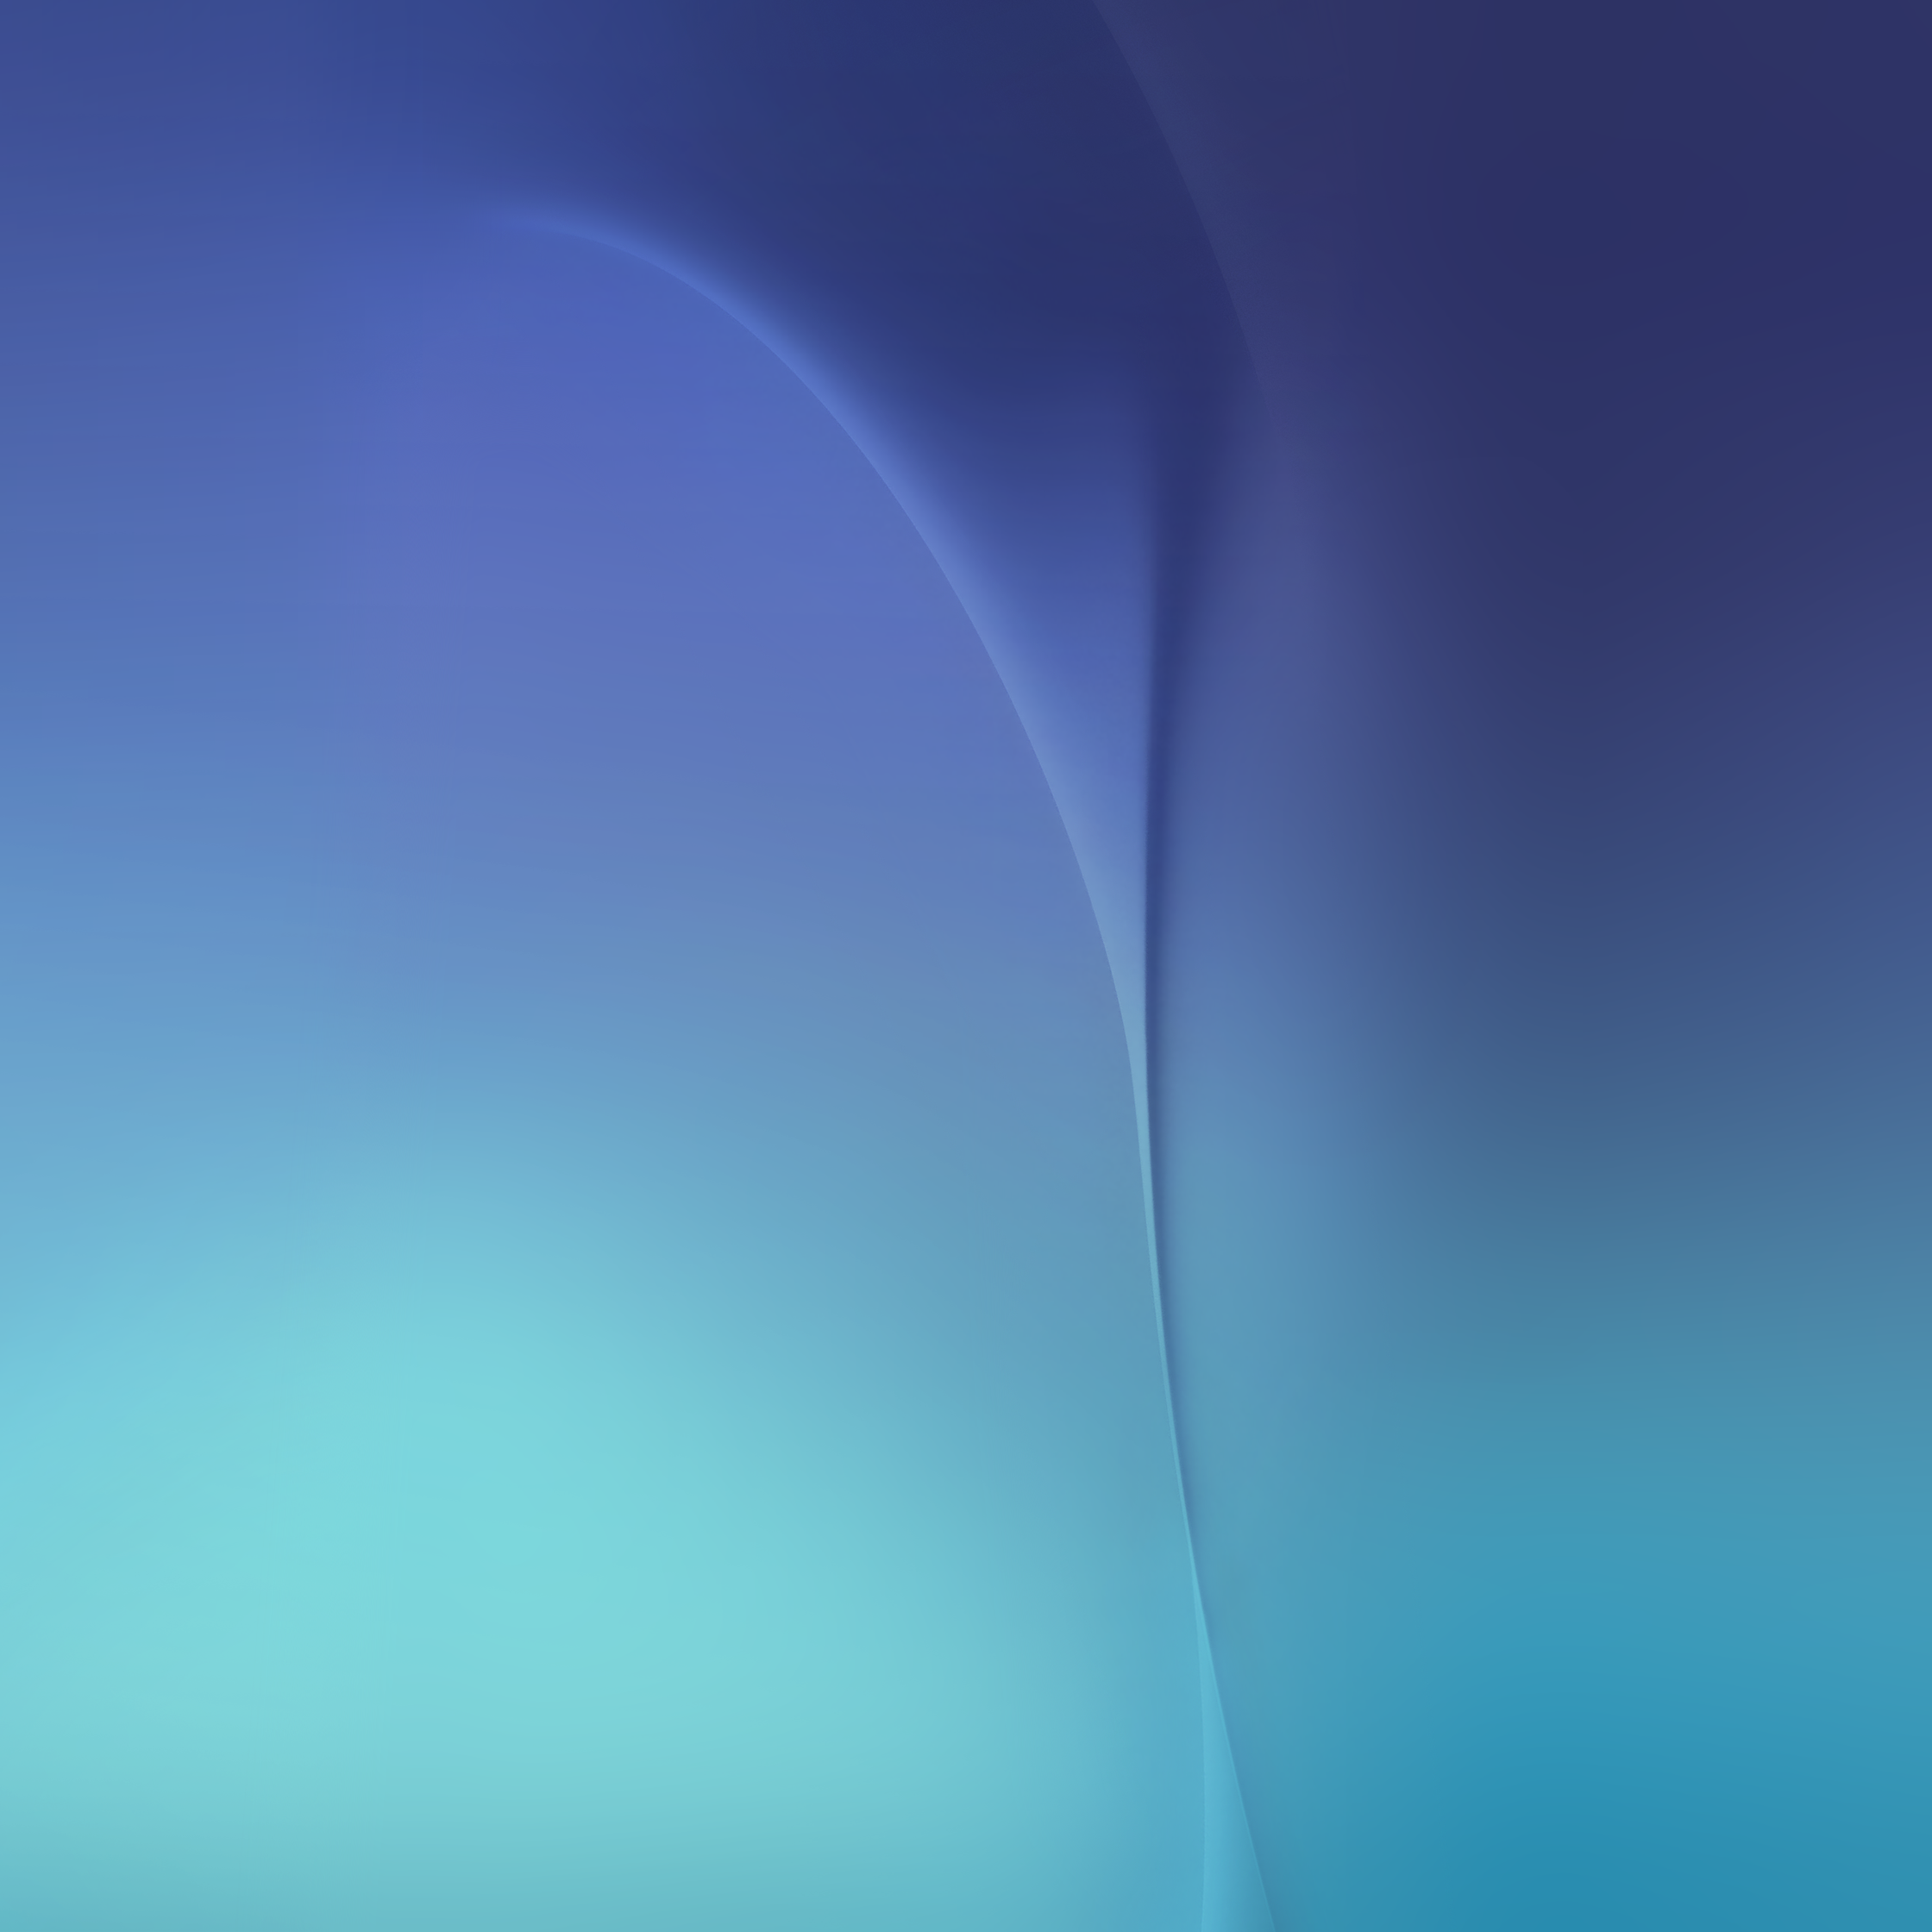 Samsung S6 Edge Wallpaper Posted By Sarah Peltier